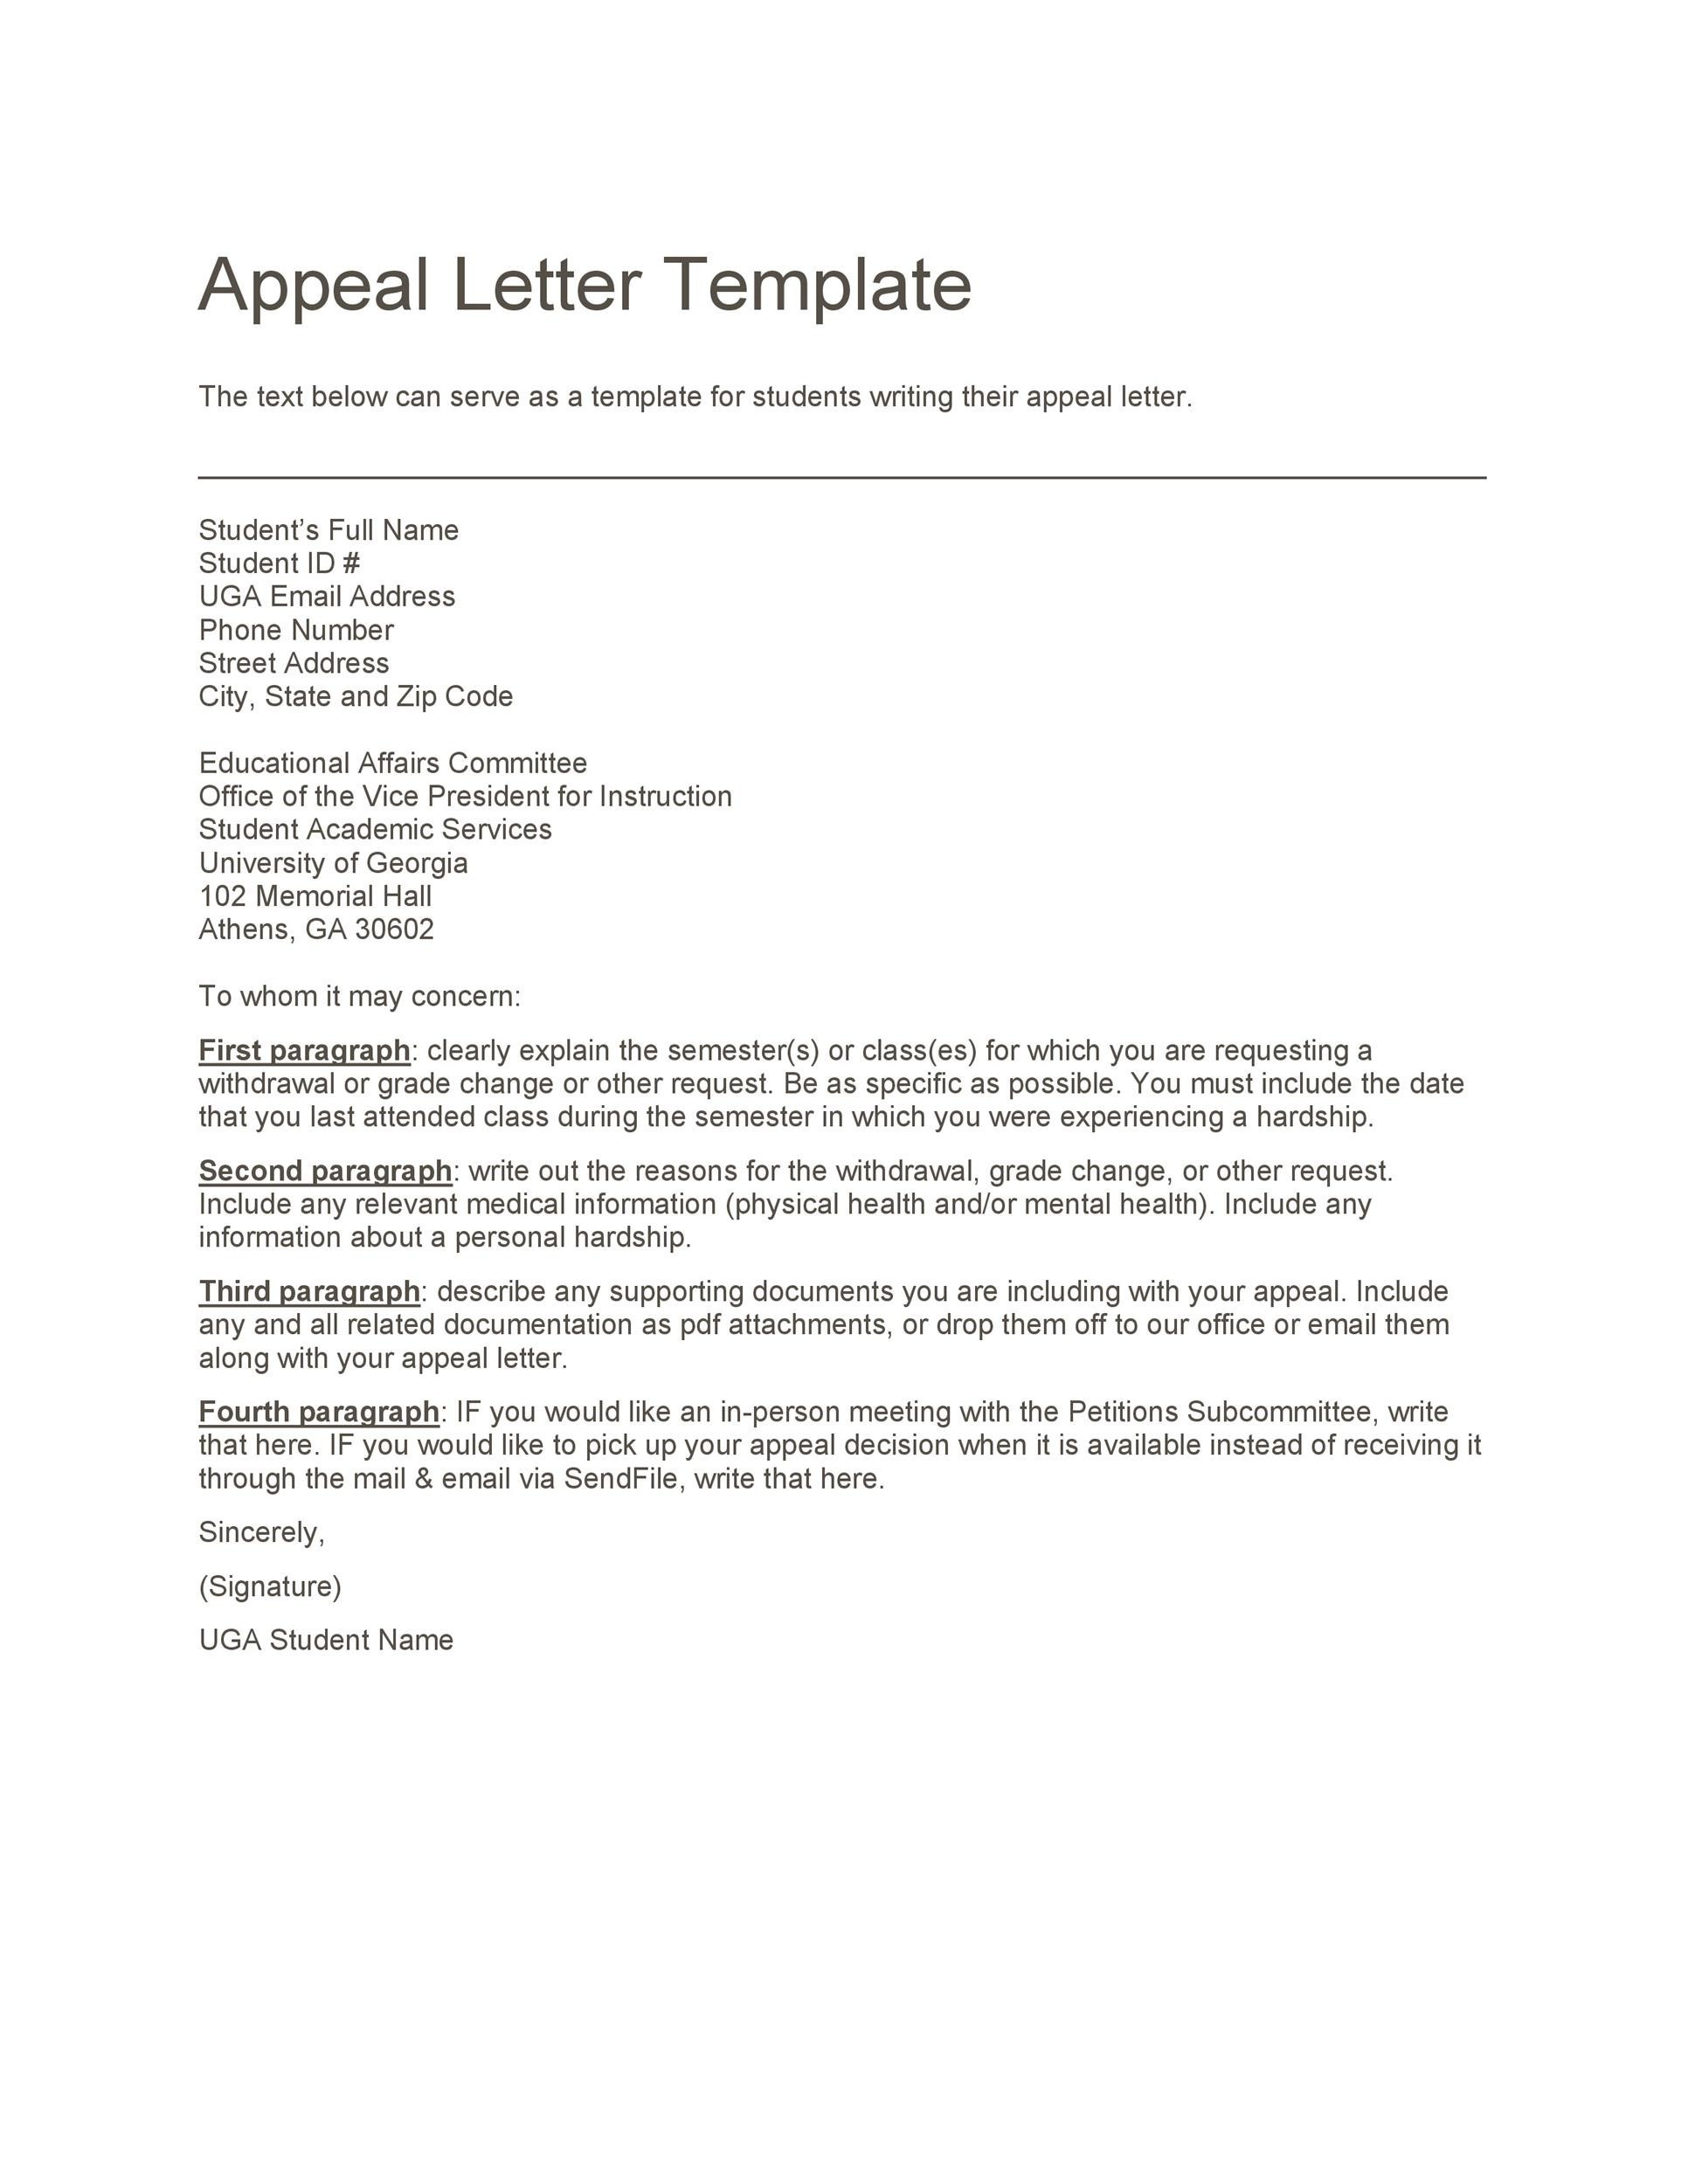 43 Effective Appeal Letters (Financial Aid, Insurance, Academic)